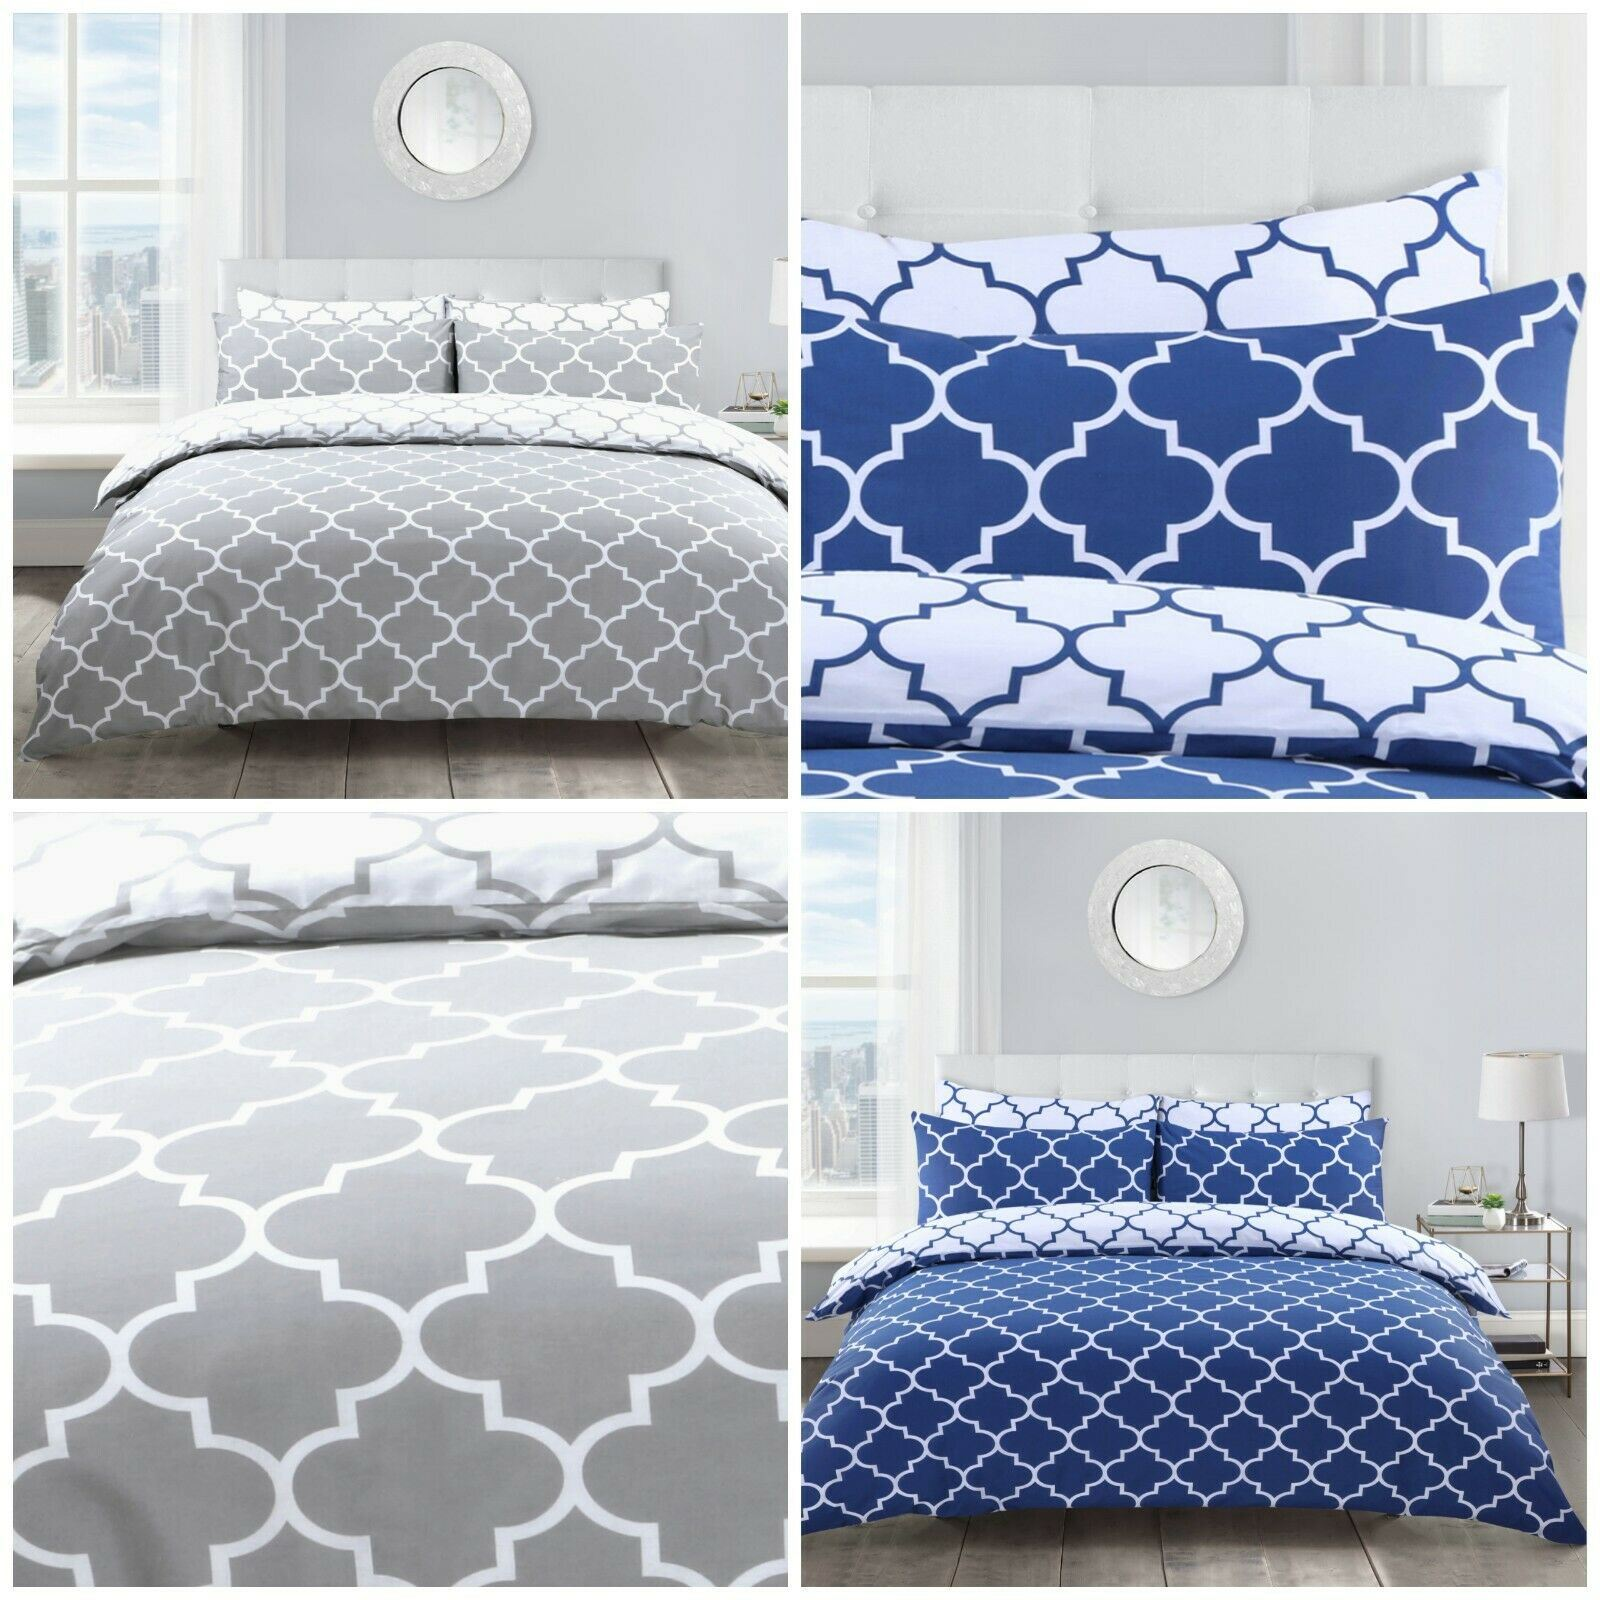 China Geometric Lattice Duvet Cover And Pillowcase S Printed Bedding Set Navy Grey China Bedding Set And Bed Sheet Price